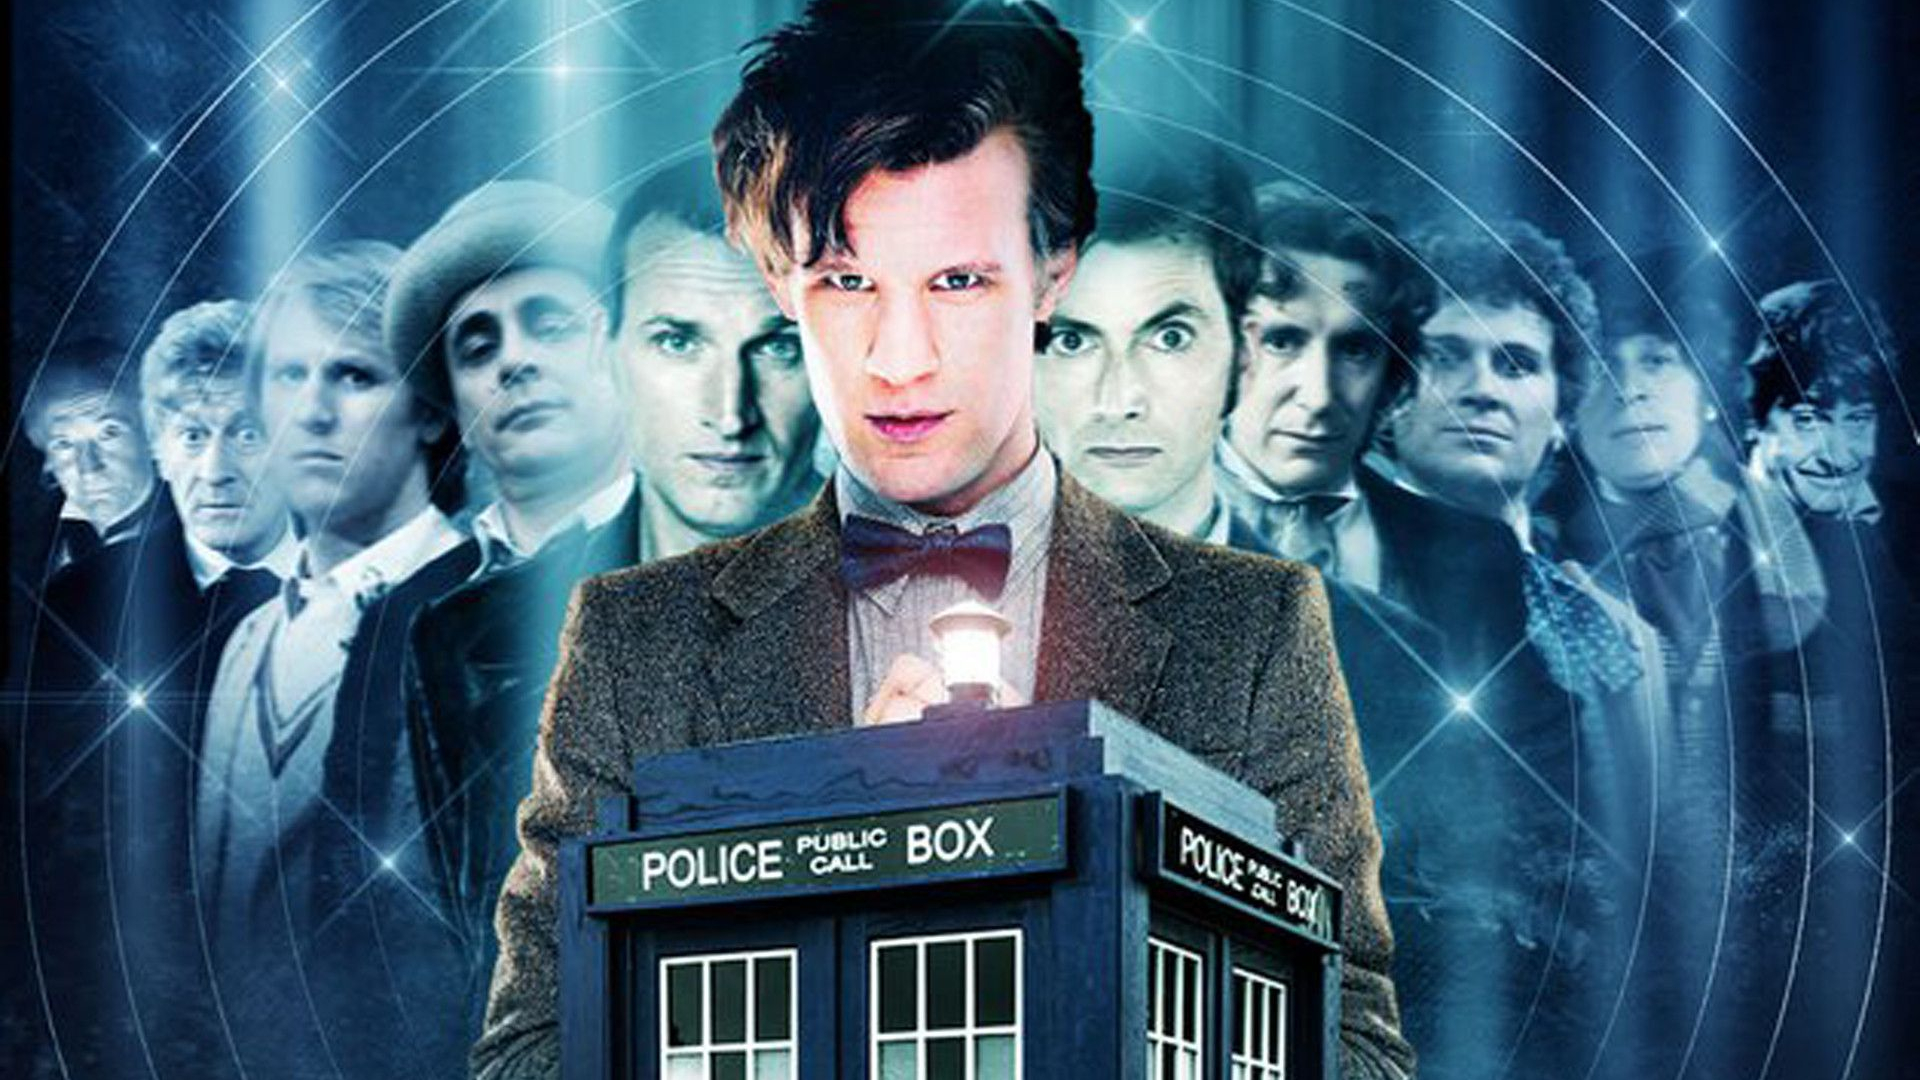 Free Download Doctor Who Wallpaper Matt Smith 1920x1440 For Your